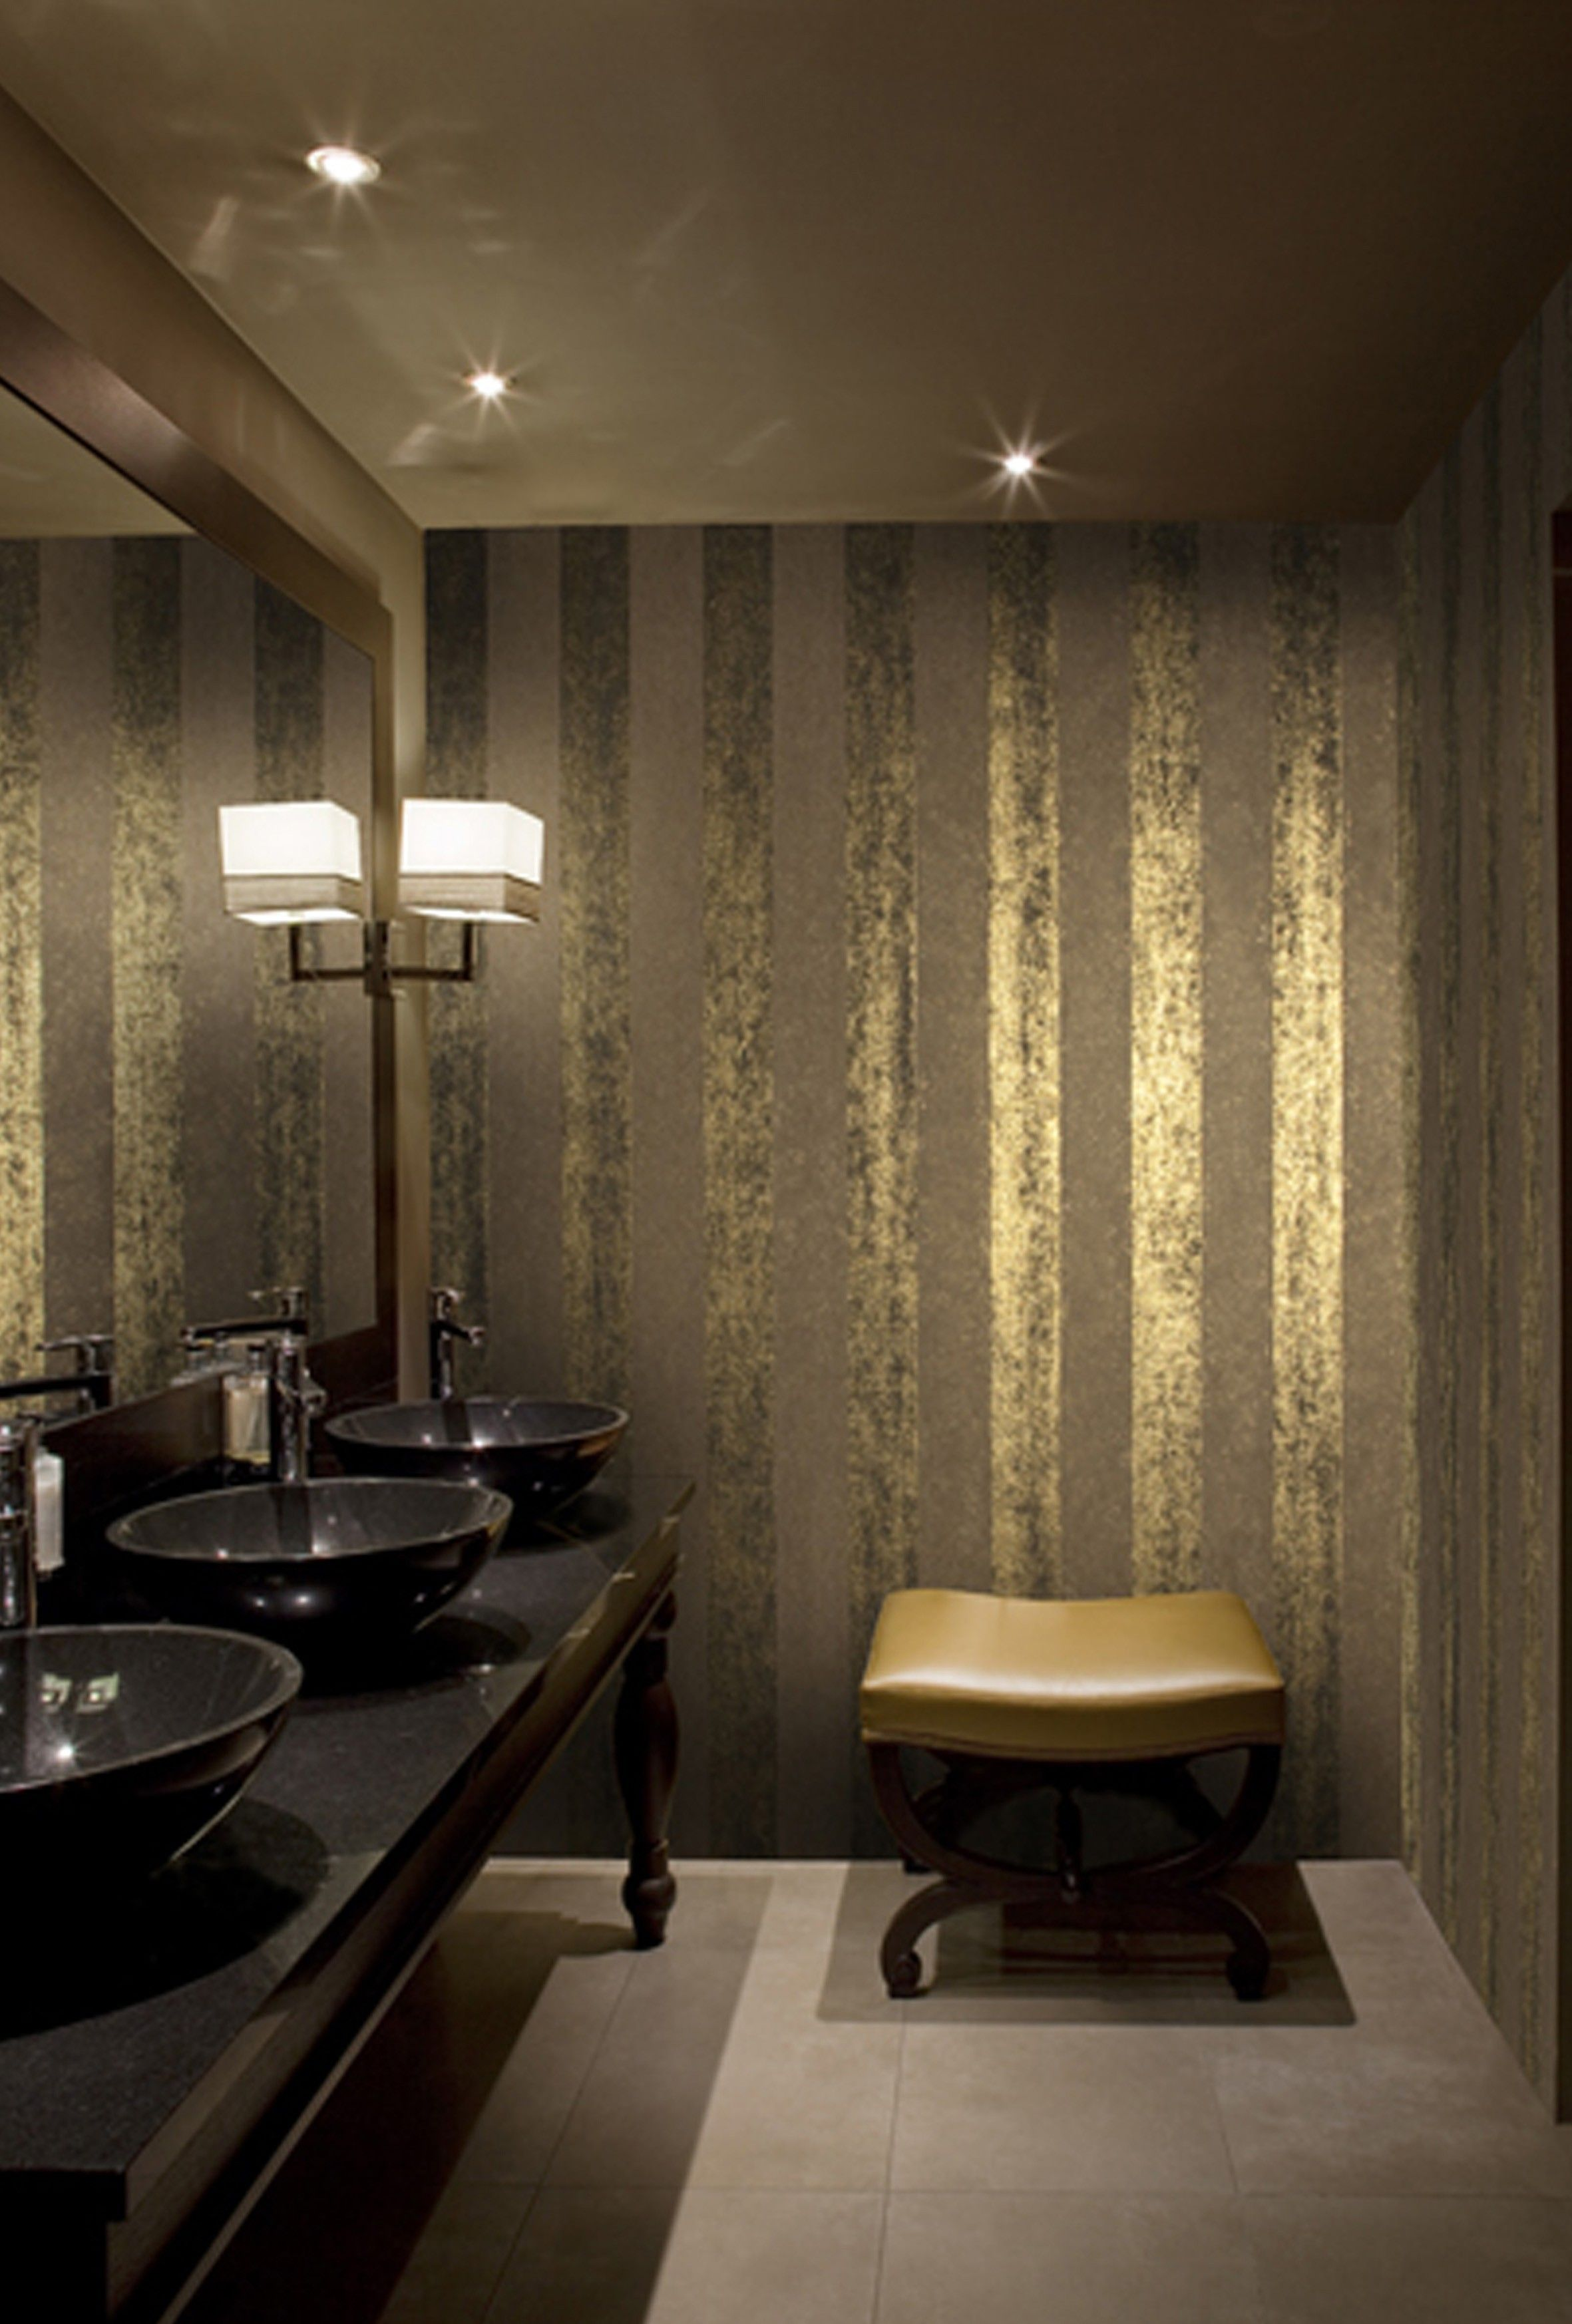 The gold foil wall covering looks luxury, especially under